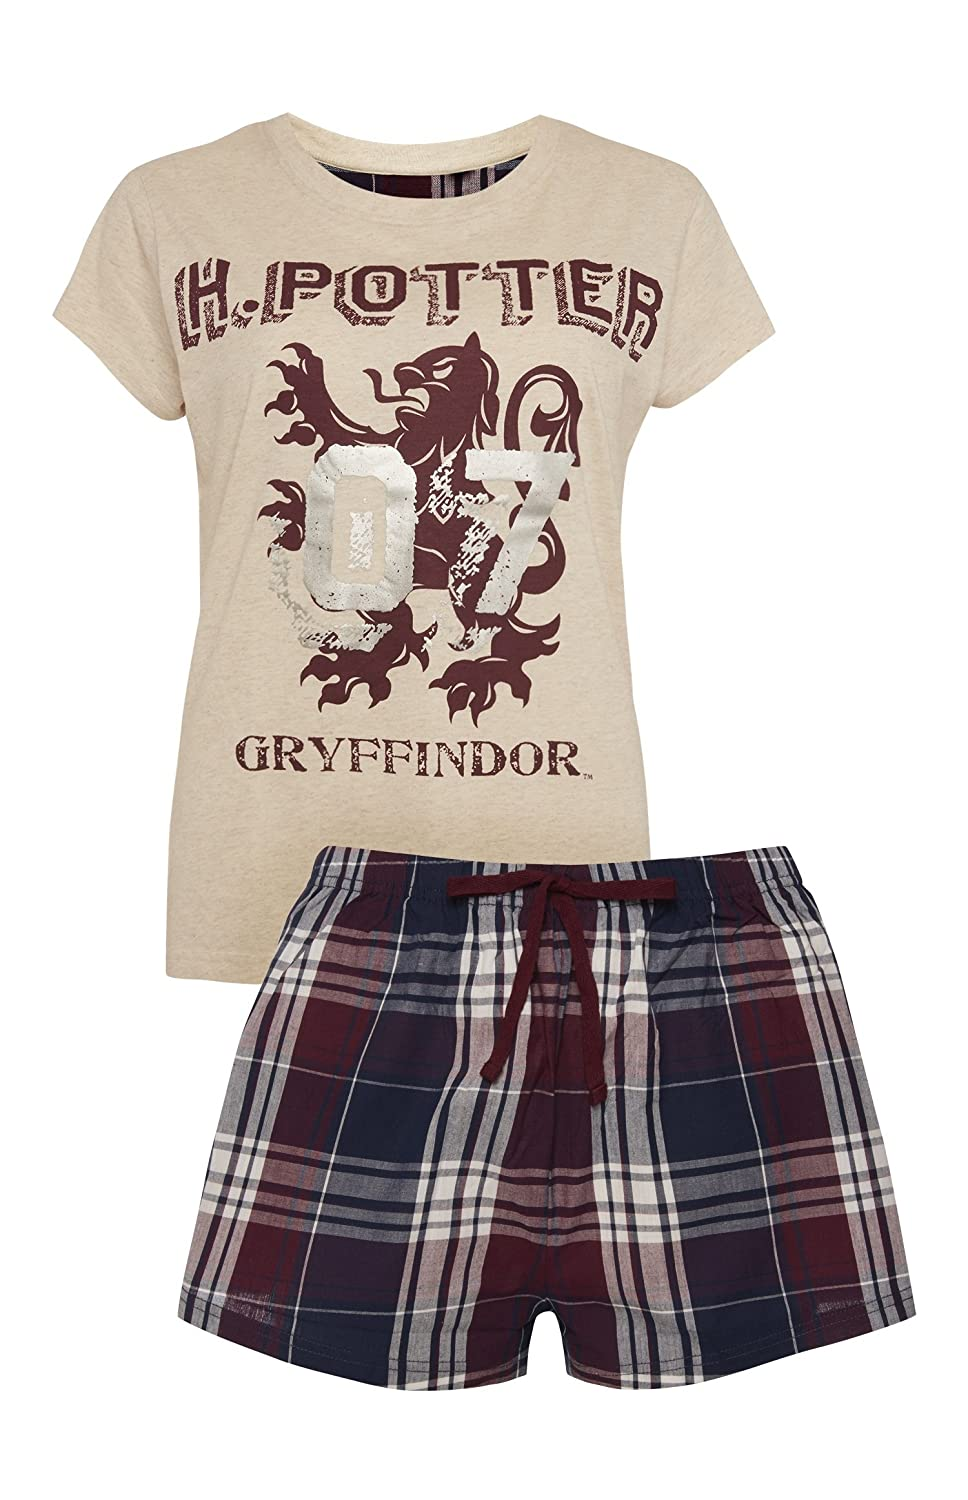 Harry Potter by PRIMARK - Pijama - para Mujer Cream/Burgandy Medium: Amazon.es: Ropa y accesorios